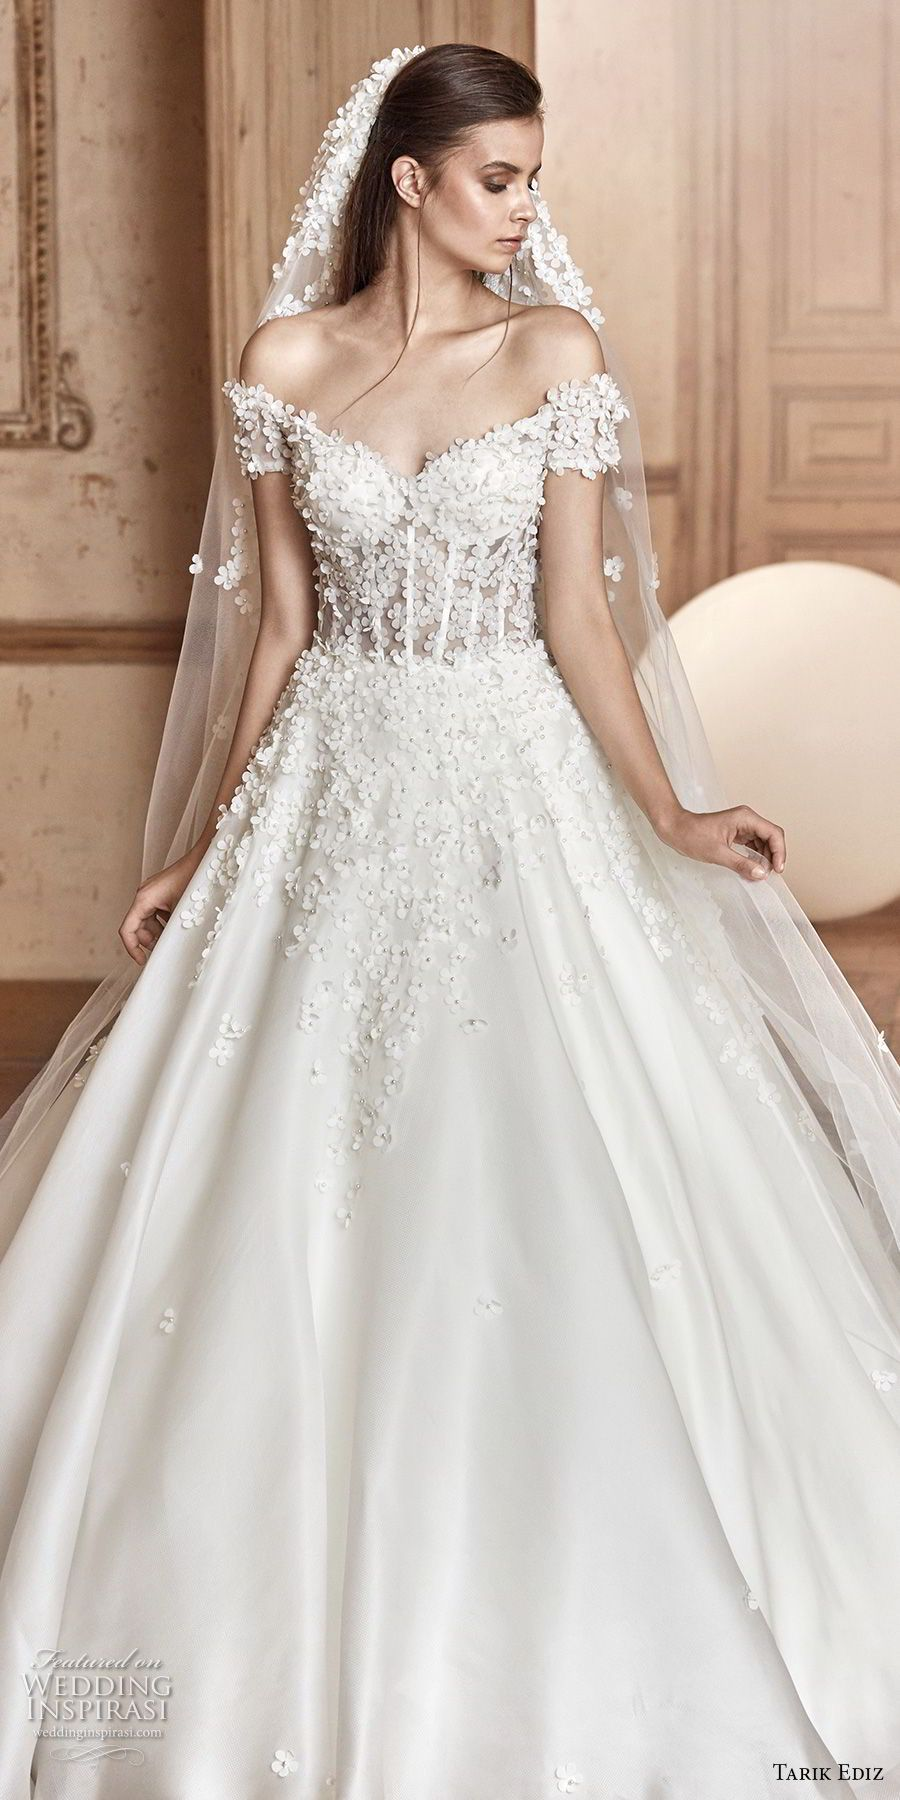 Tarik Ediz White 2017 Wedding Dresses